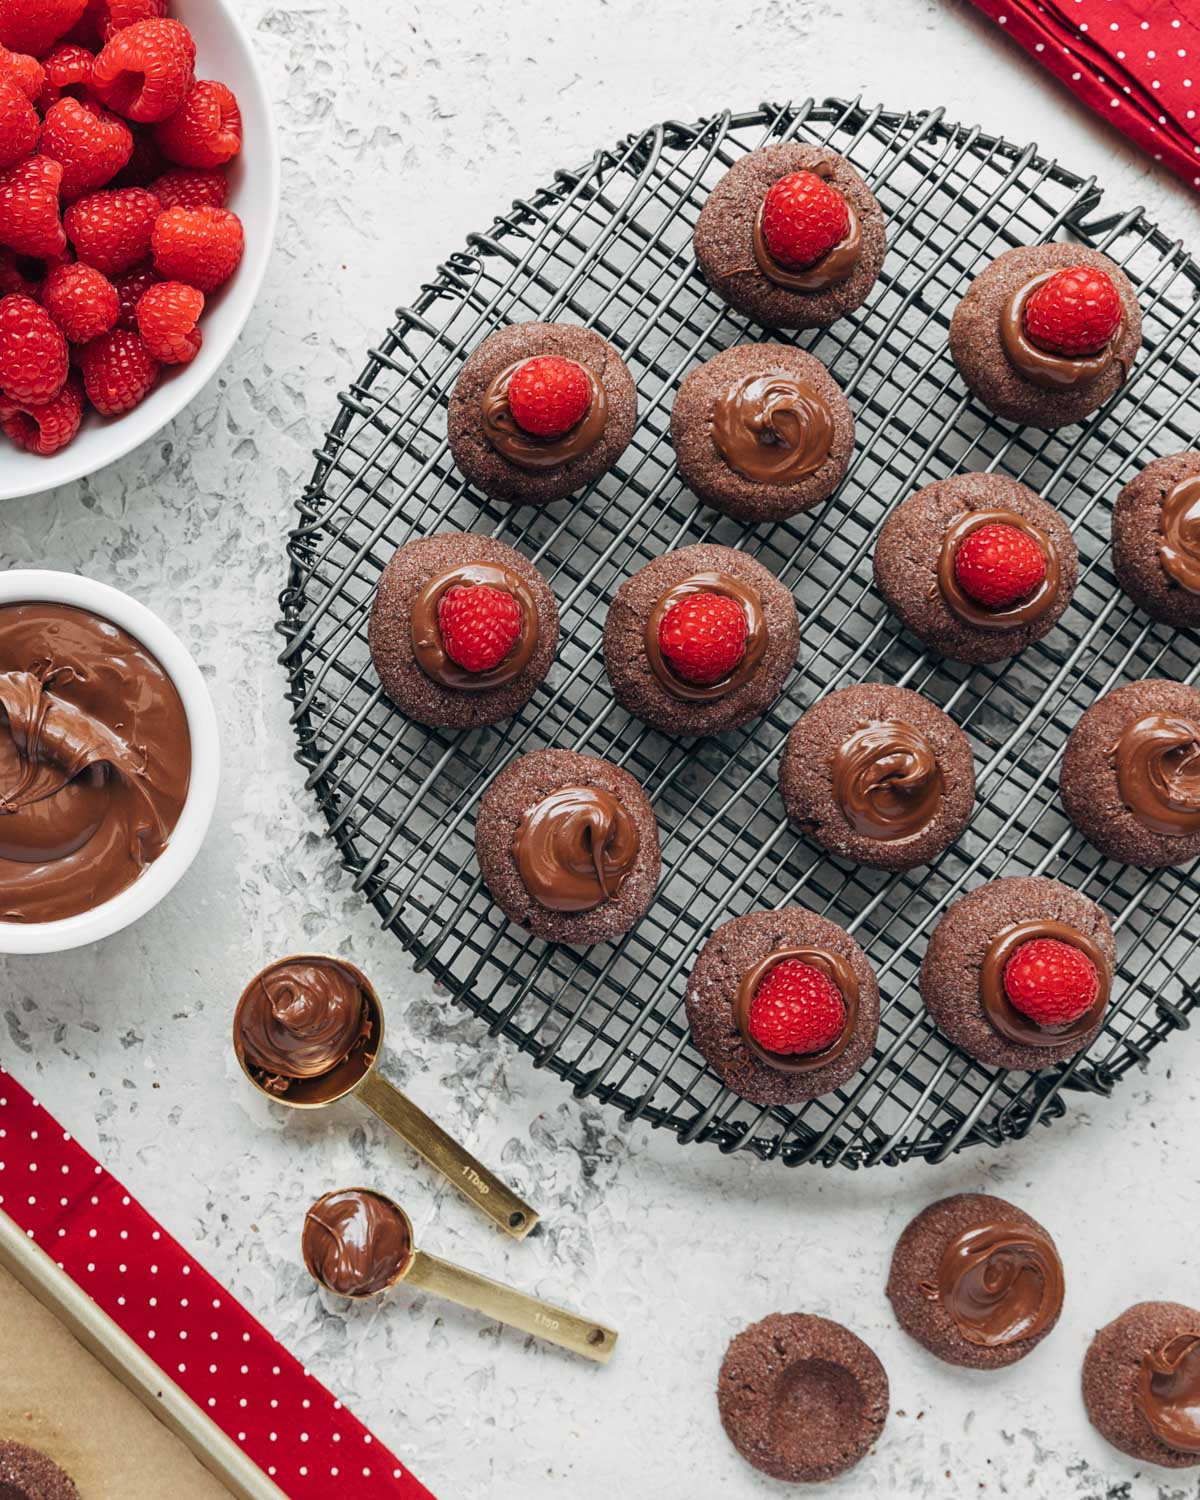 filled chocolate hazelnut thumbprint cookies on a cooling rack with bowls of raspberries and chocolate hazelnut spread